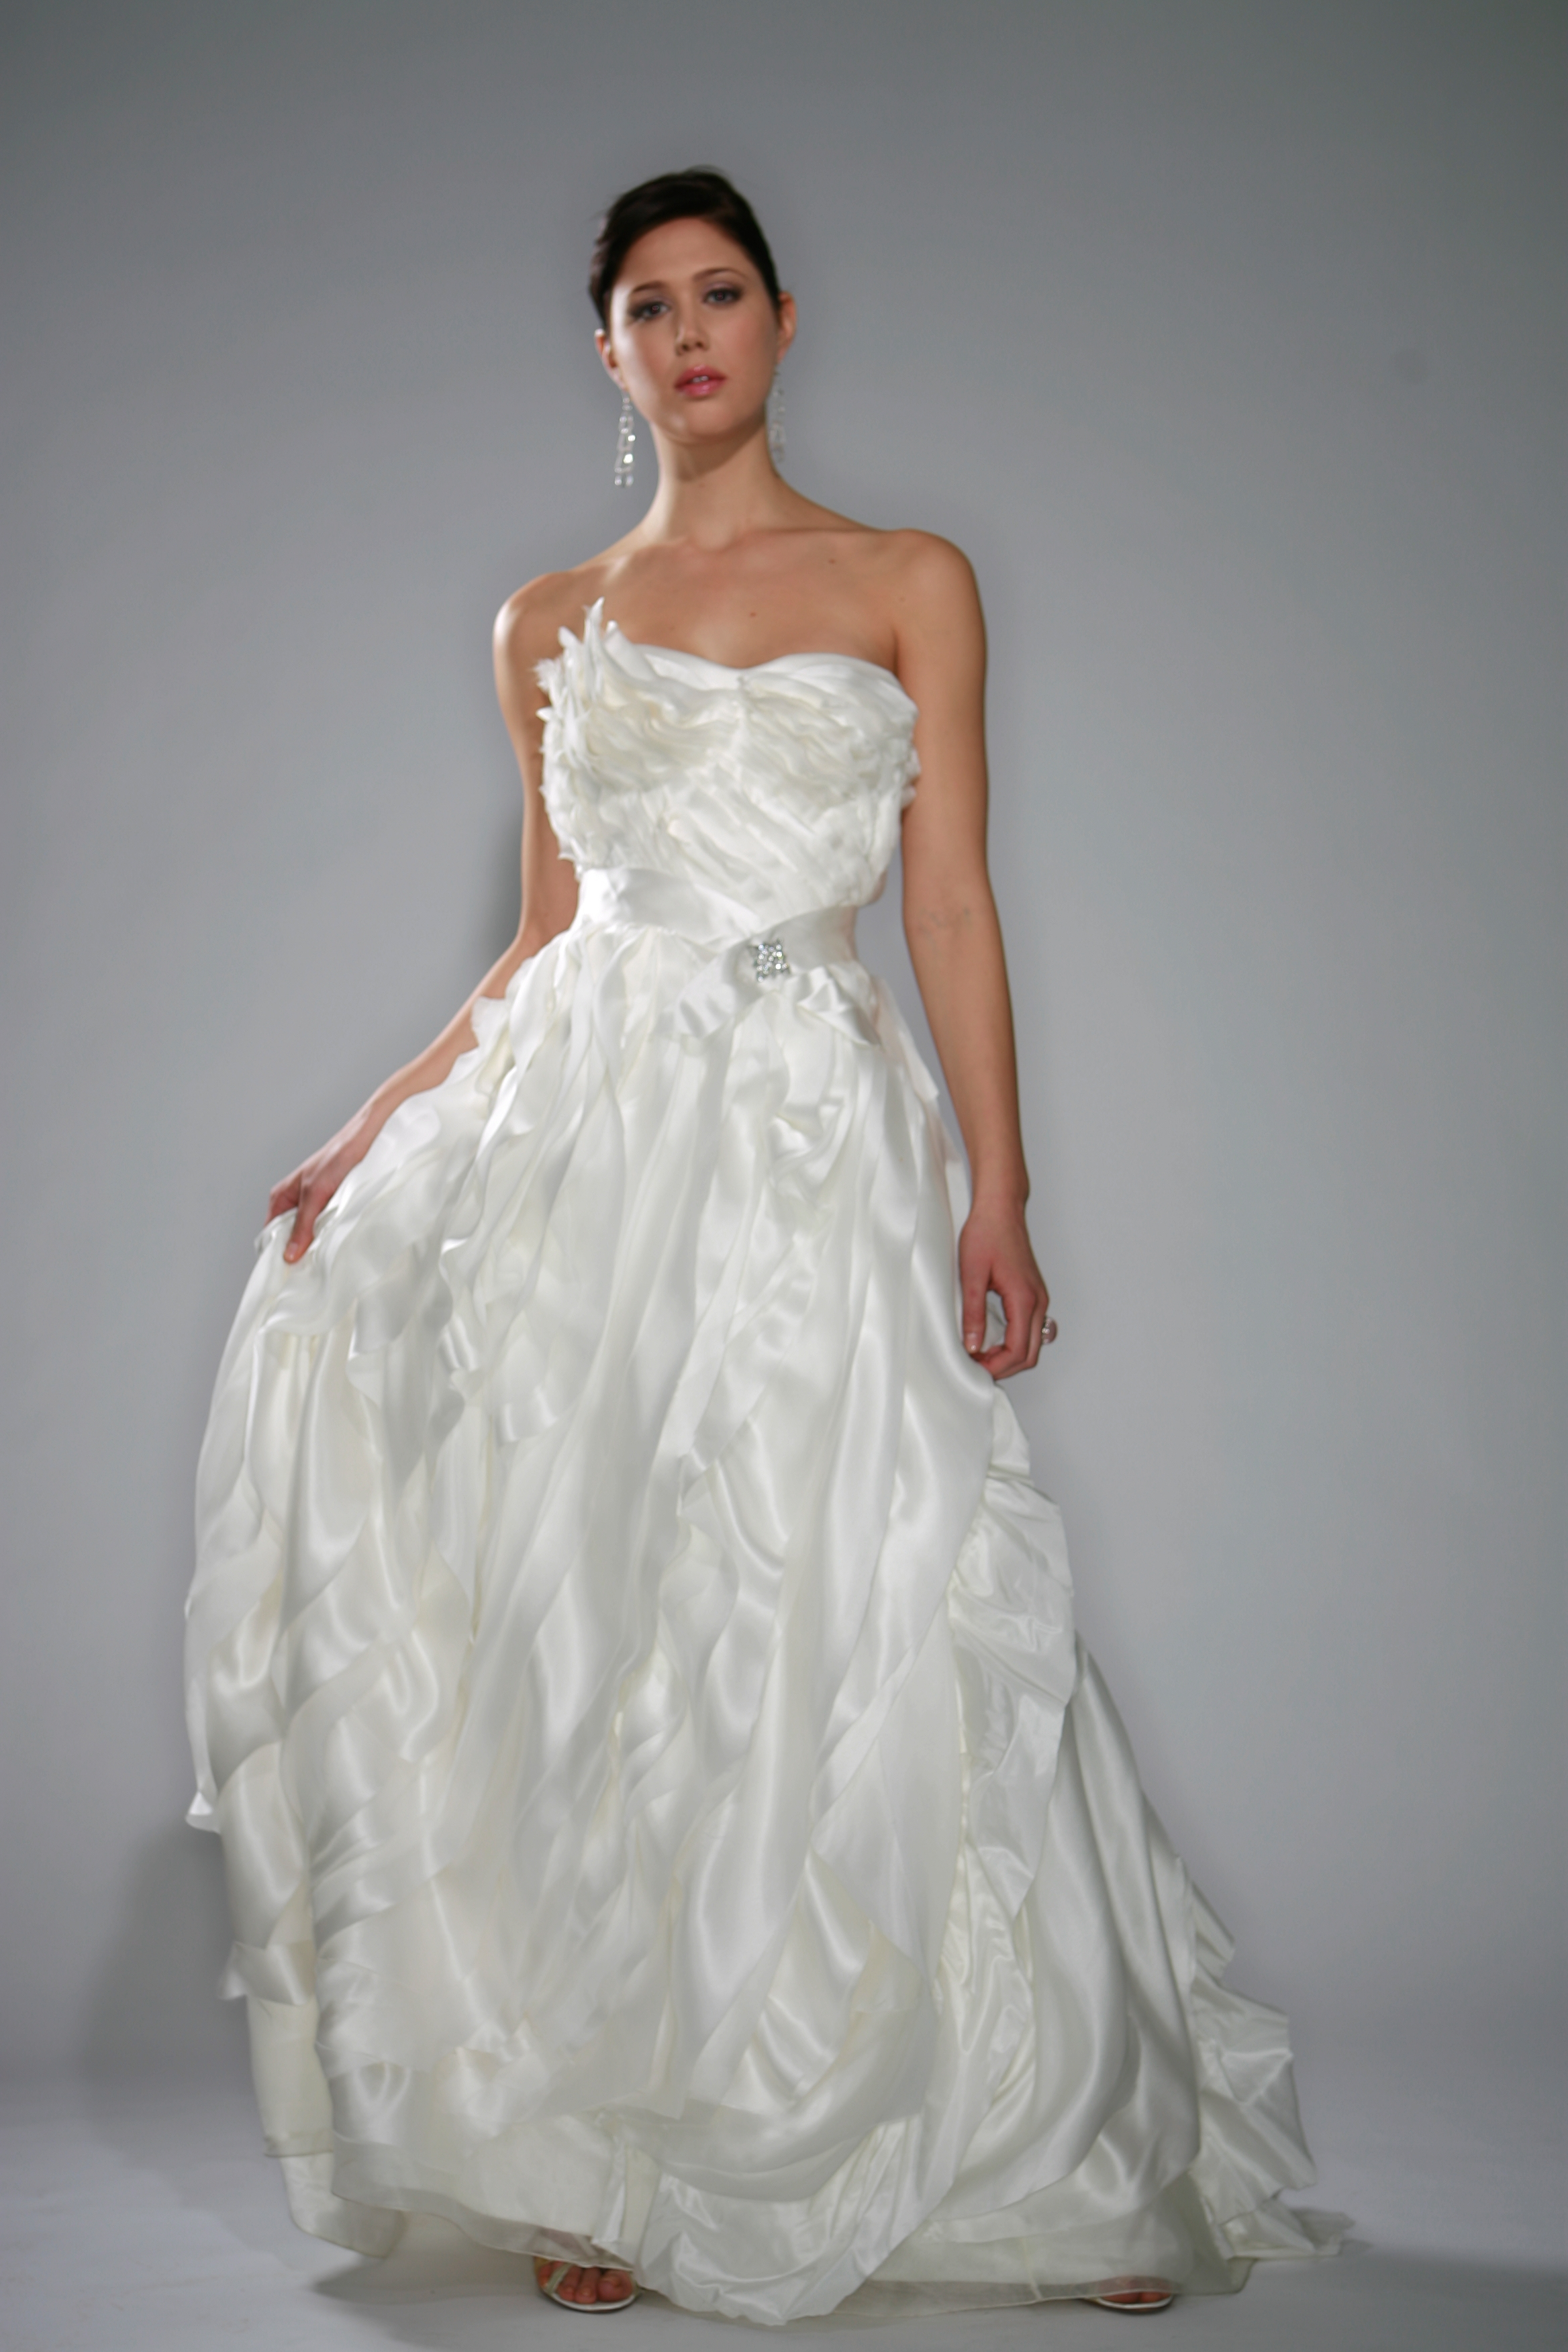 La-scala-white-strapless-dramatic-wedding-dress-sash-at-waist-rhinestone-detail.original